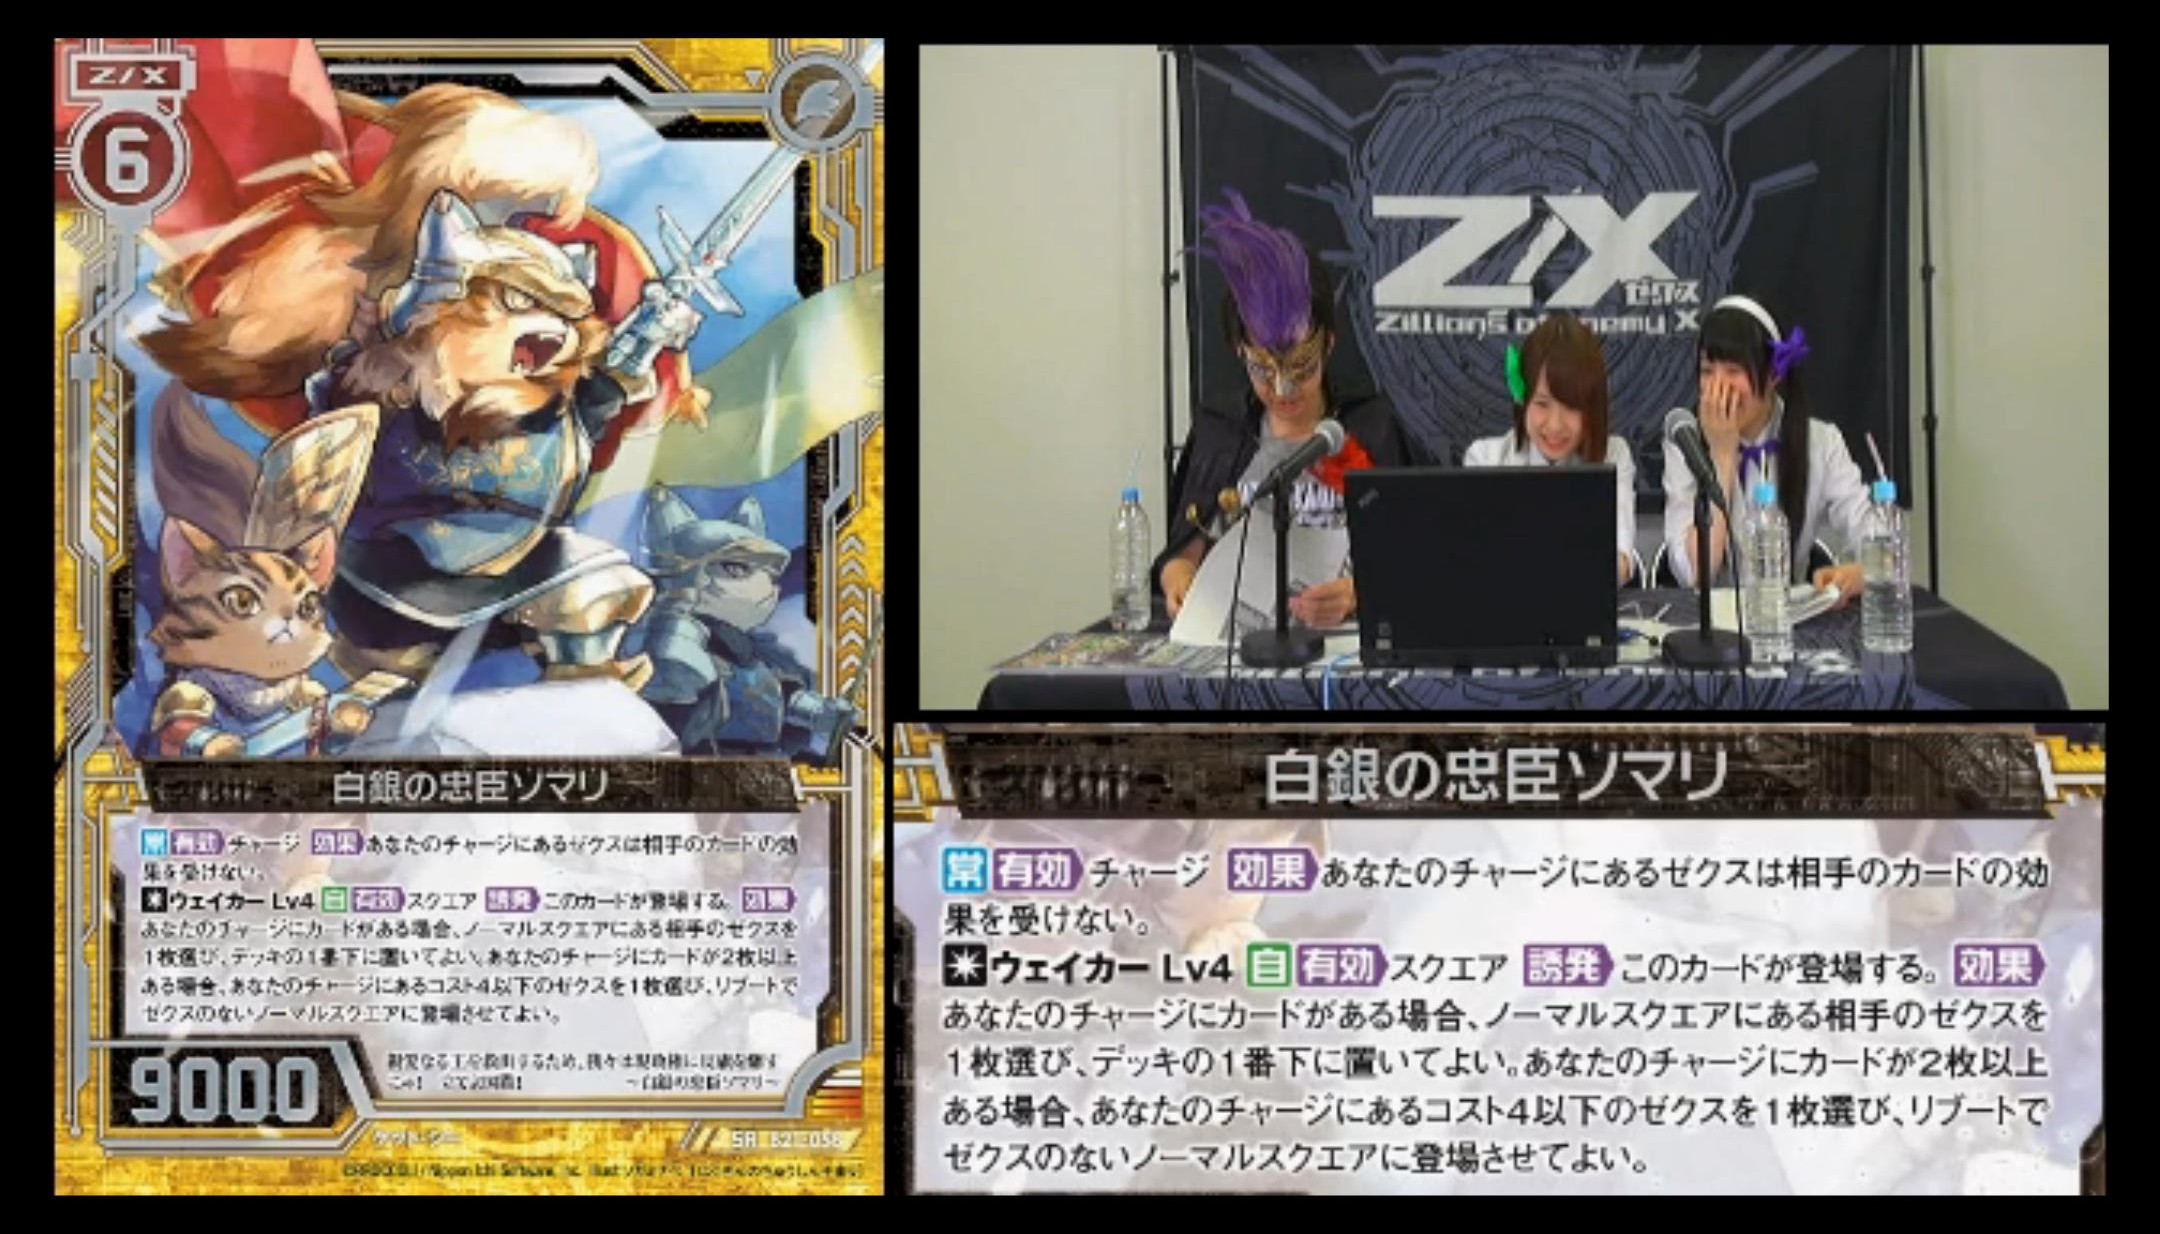 zx-ignition-broadcast-170531-020.jpg